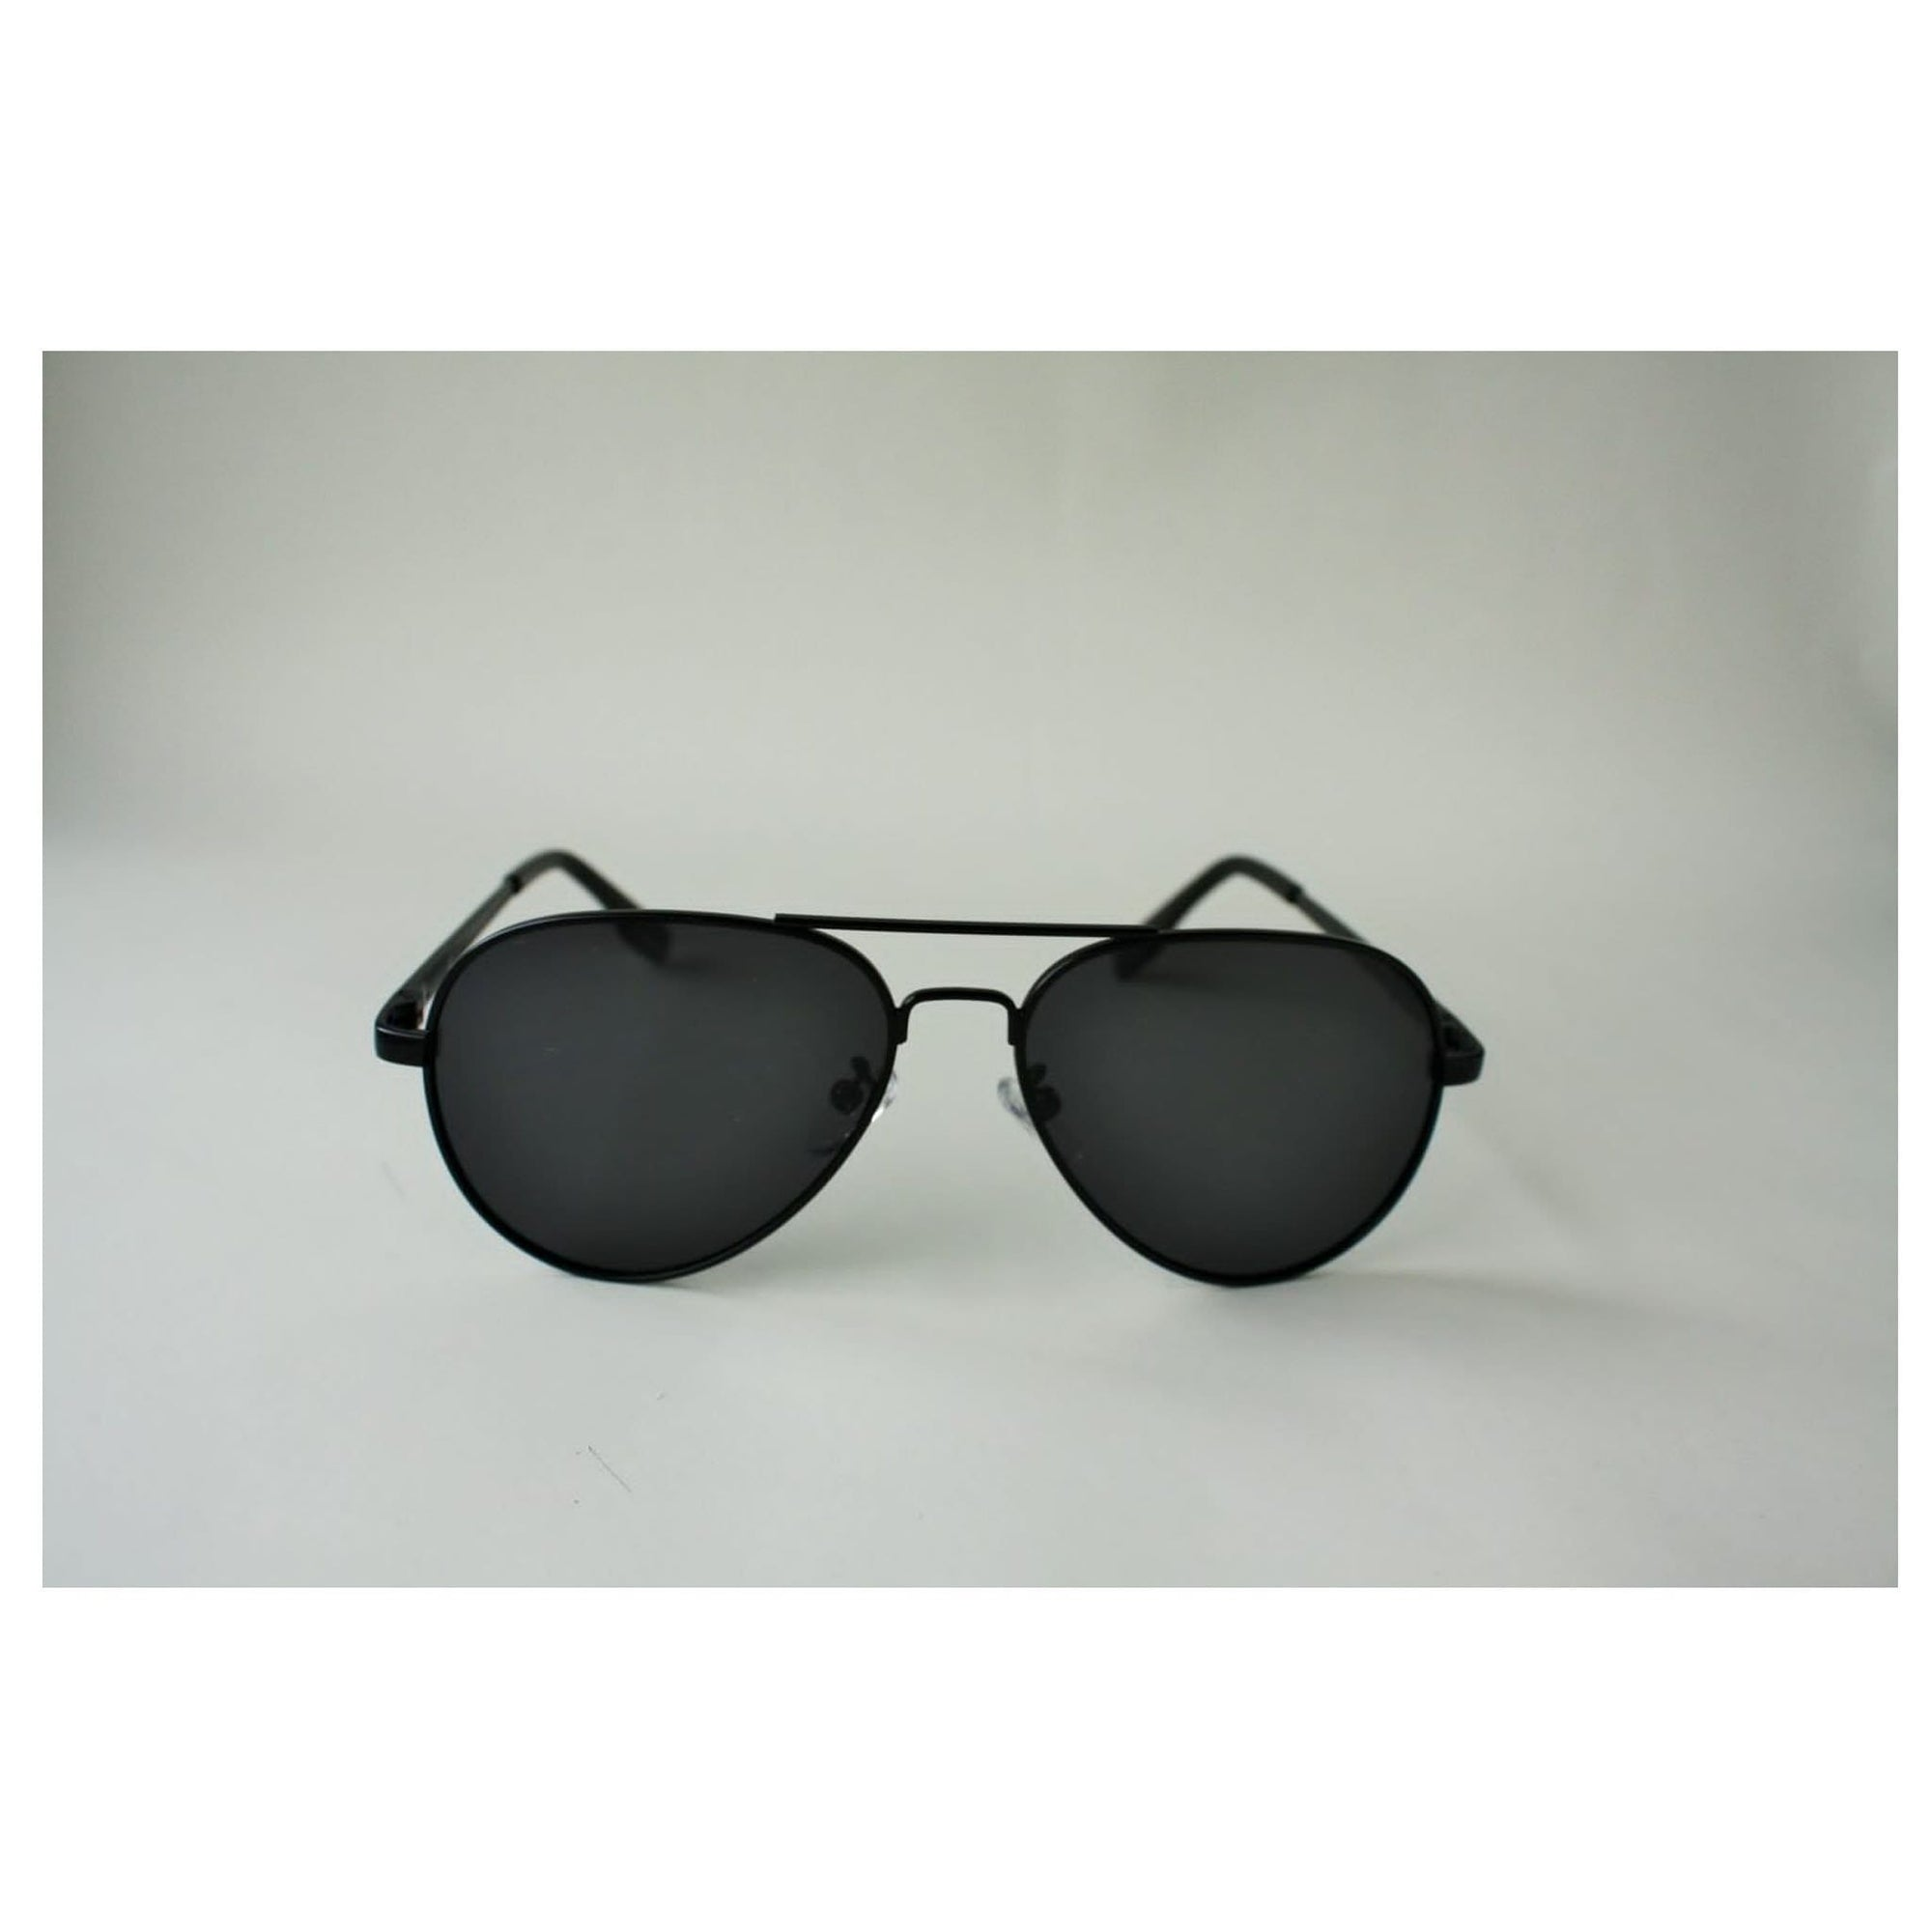 Elle Porte Children's Sunglasses - Flyn Black